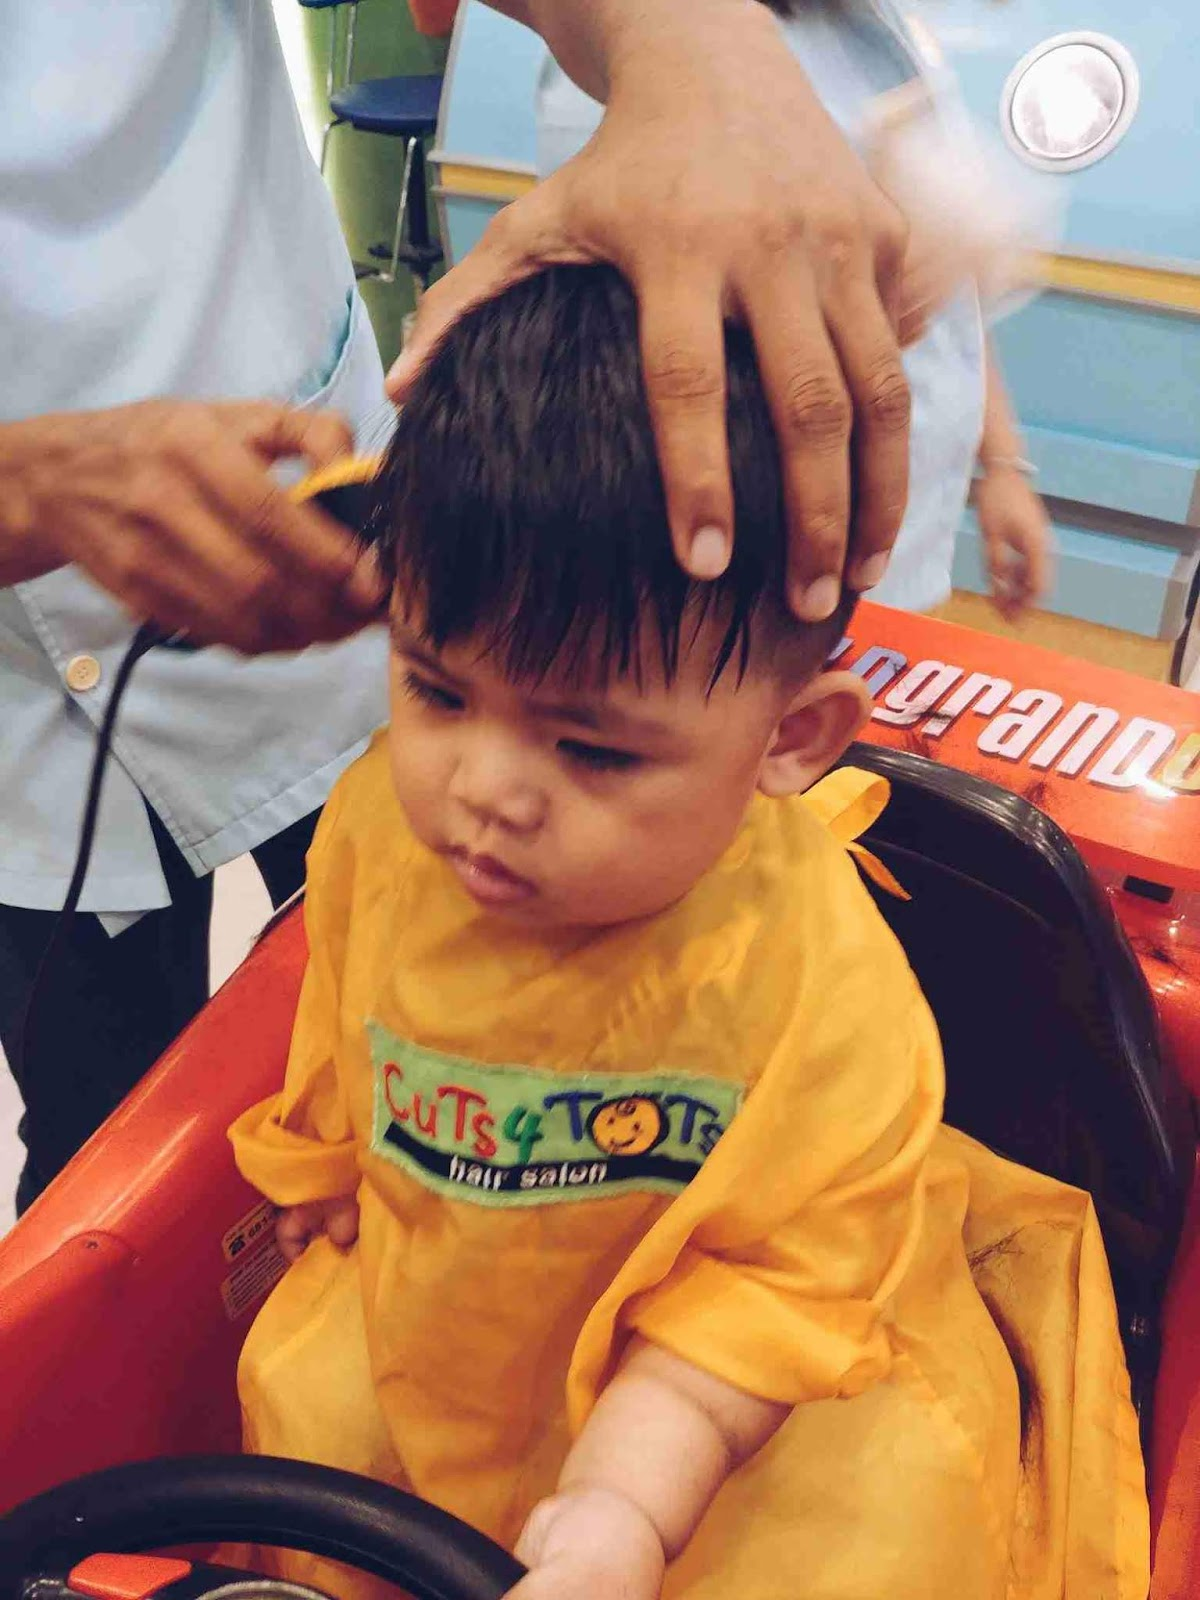 Miguel looking relaxed at Cuts 4 Tots